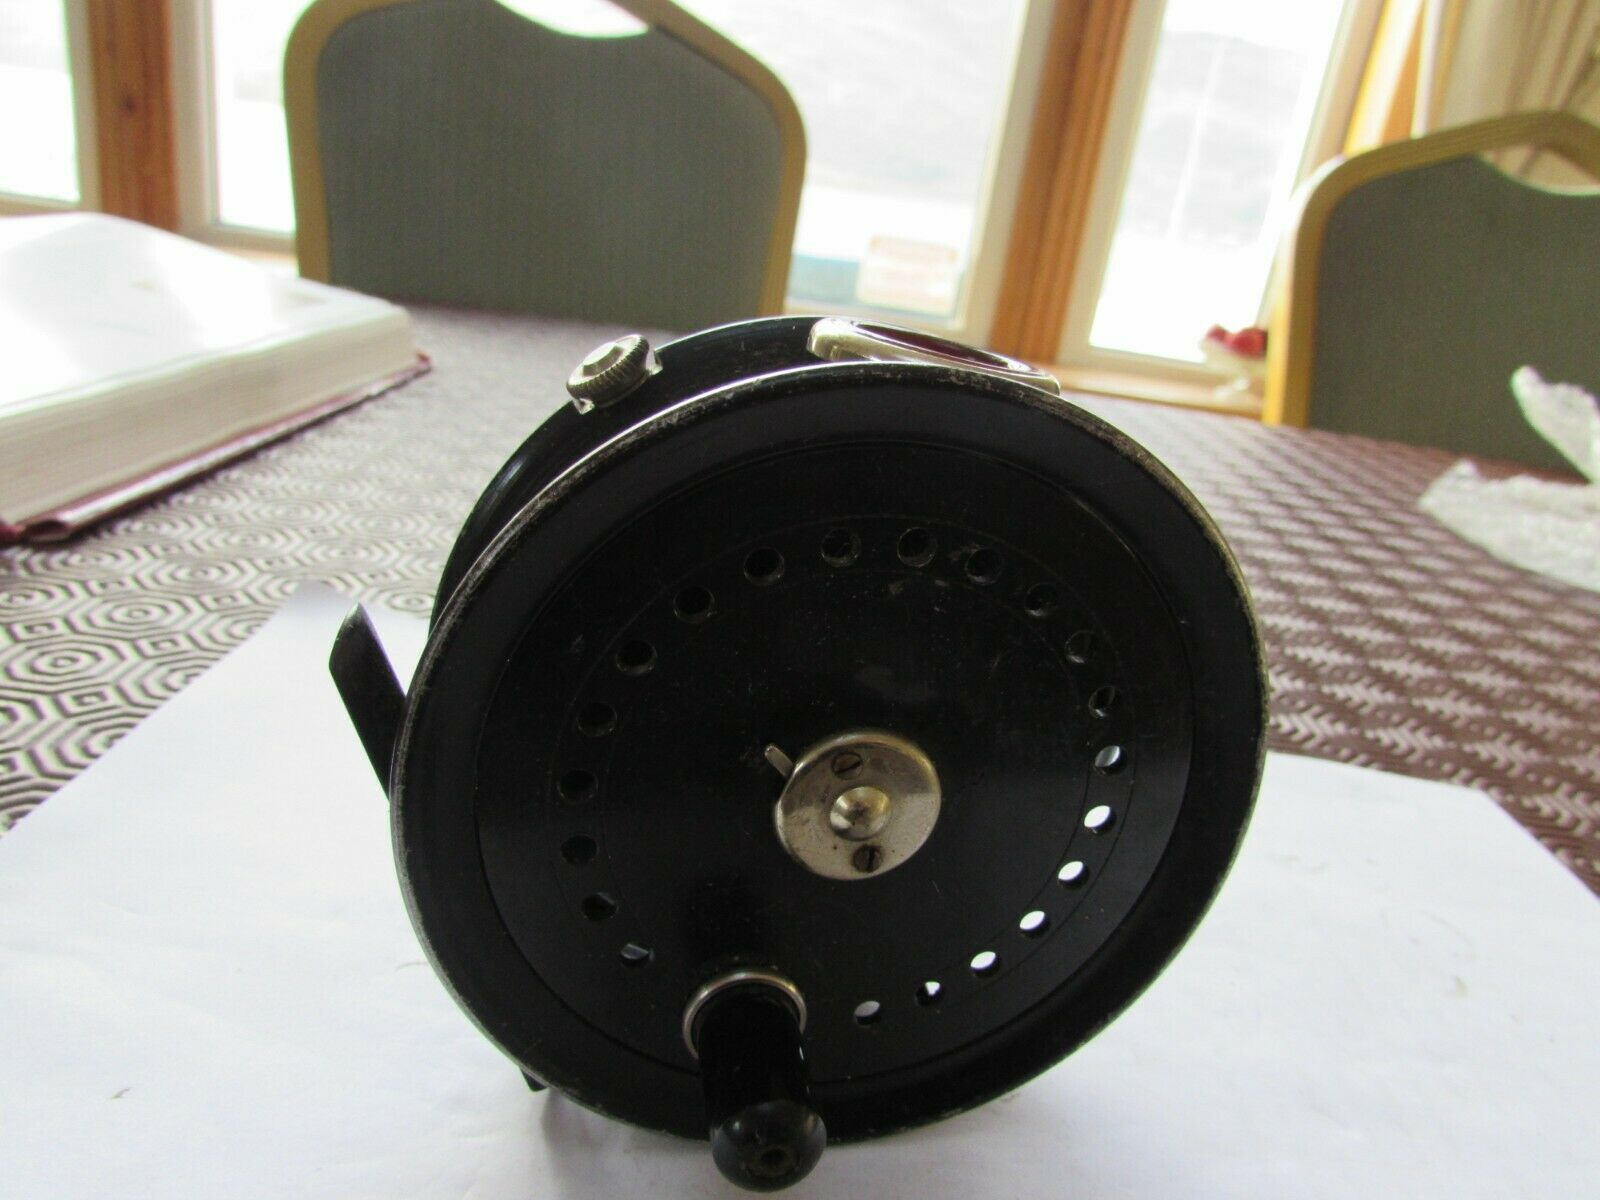 A1 excellent XX rare vintage named JW youngs 14A rot agate trout fishing reel 4